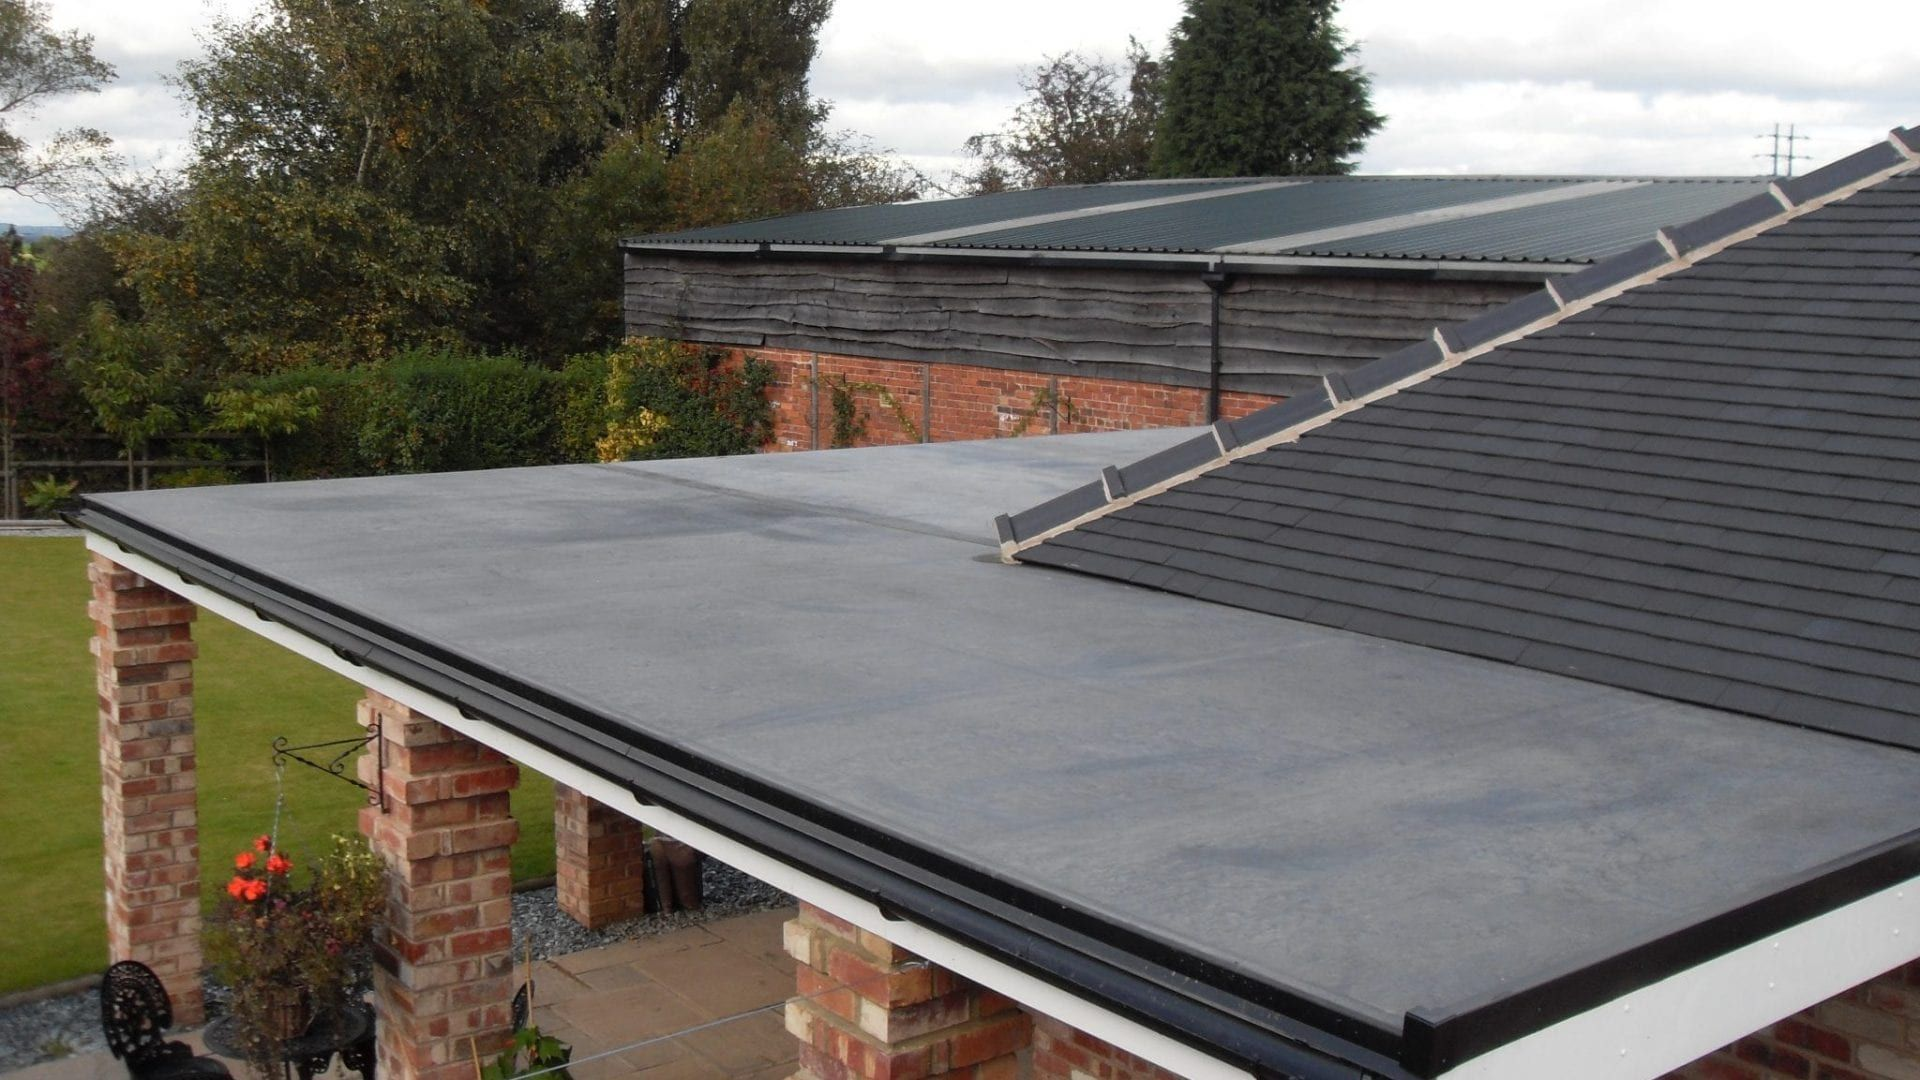 Edpm Firestone Rubber Roof Replacement From Cotswold Roofing In Oxford In 2020 Rubber Flat Roof Flat Roof Epdm Flat Roof